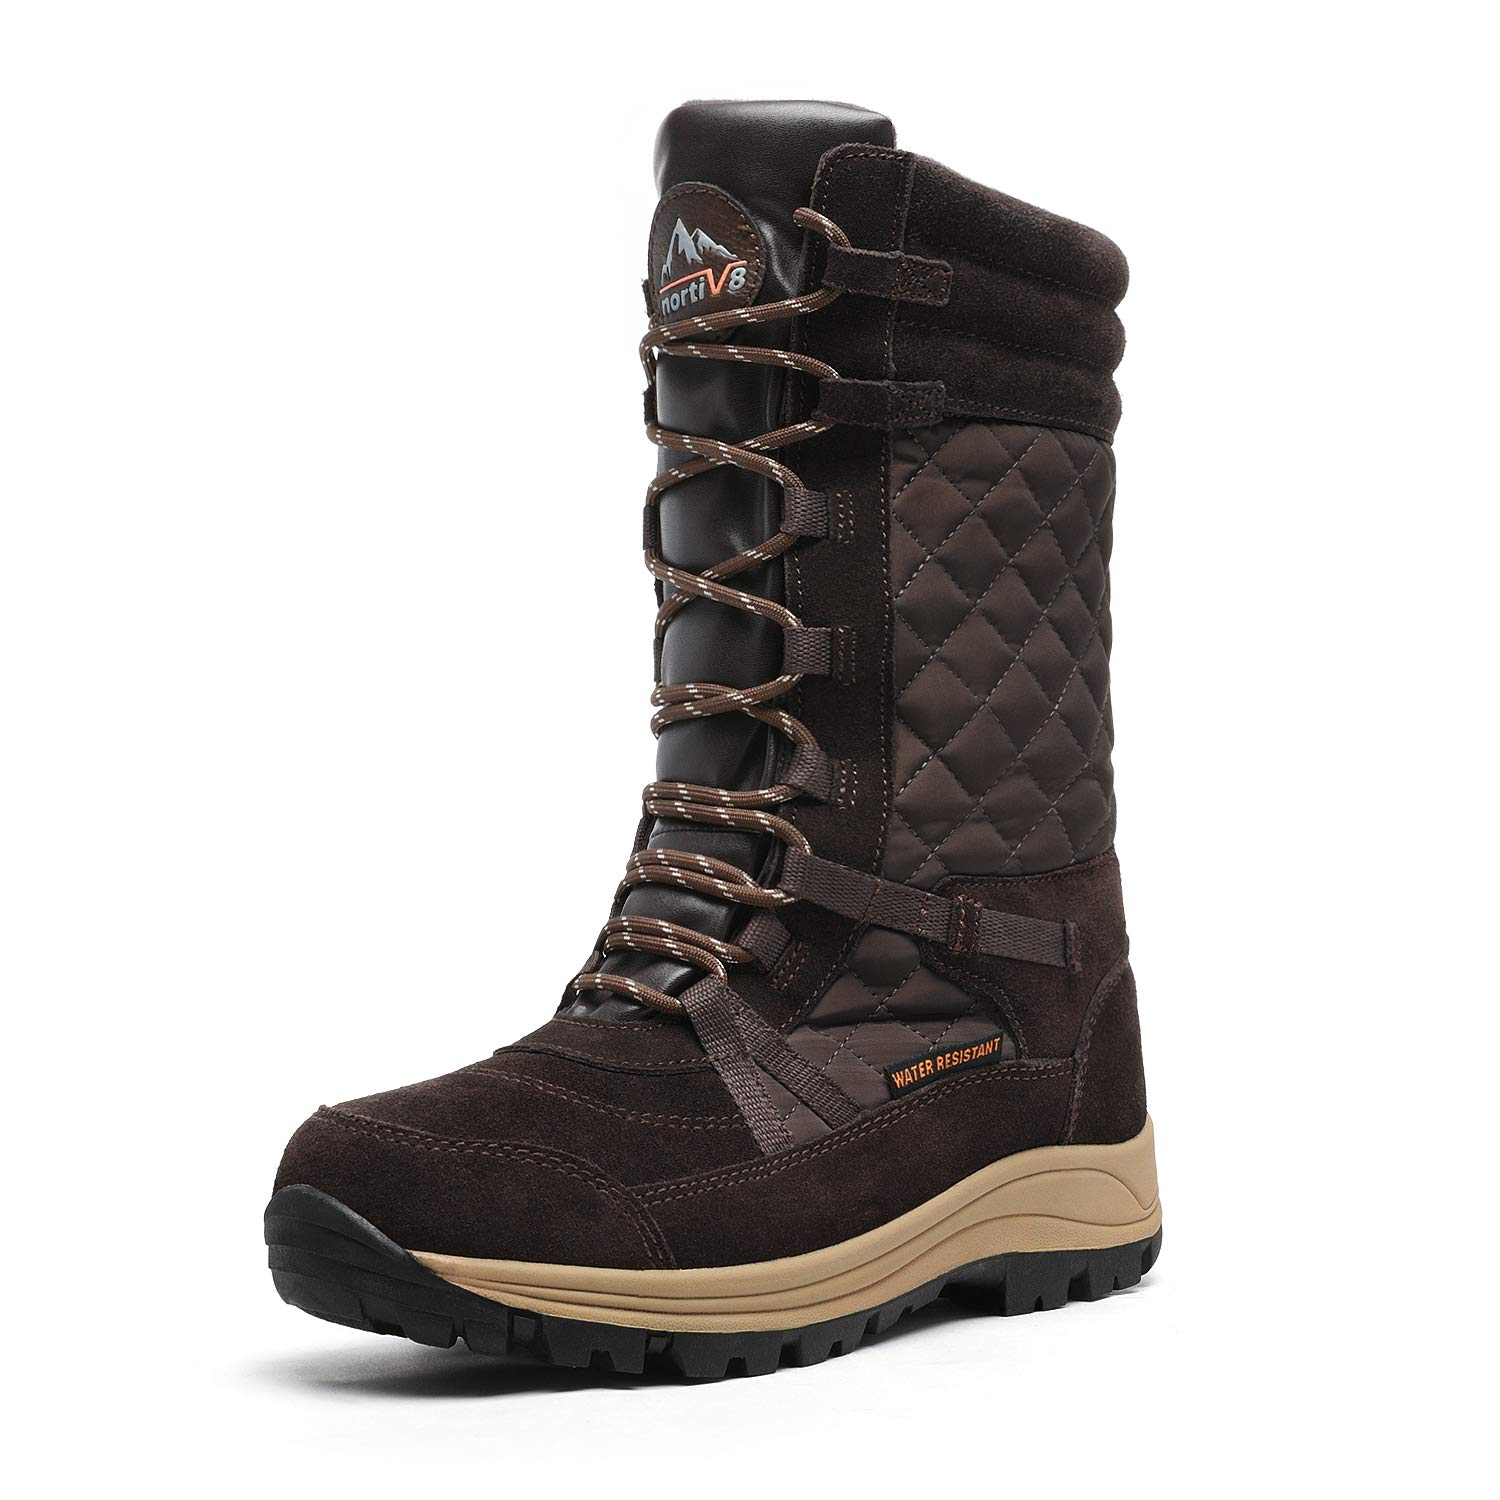 NORTIV 8 Women's Mid Calf Lace up Insulated Winter Snow Boots